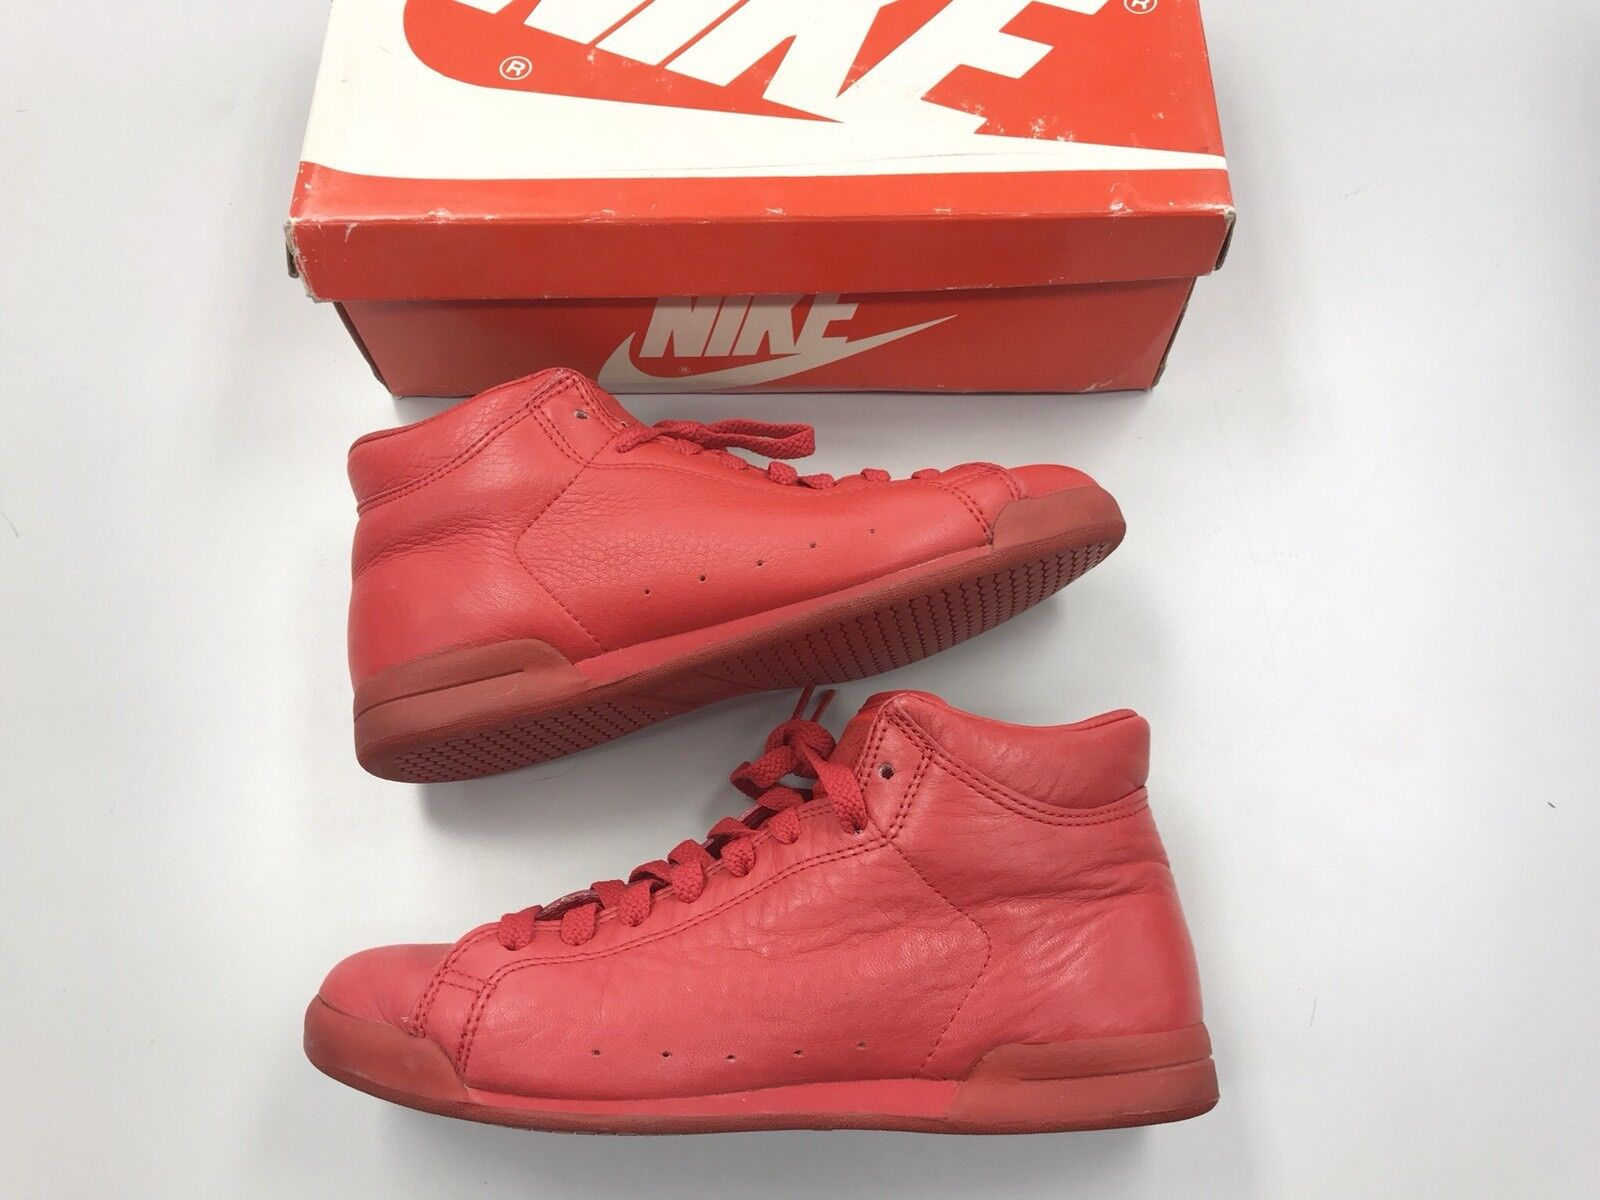 1986 Vintage Nike Courtside High Red 6.5 Leather Women Shoes Size 6.5 Red Worn a45aef